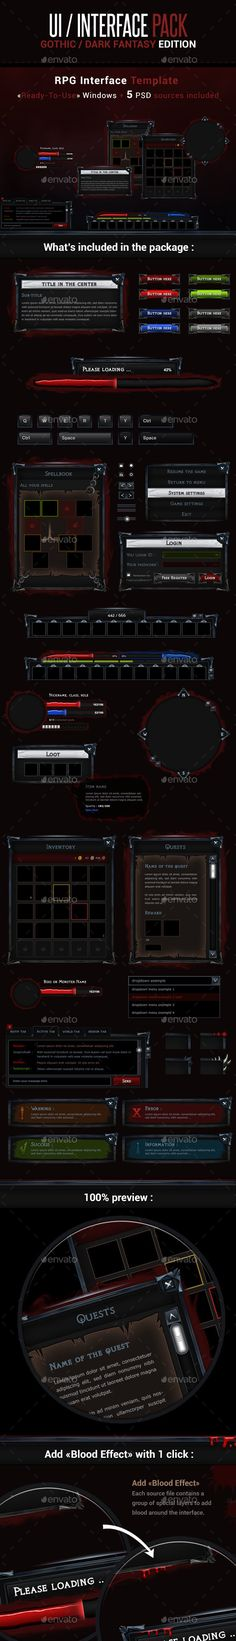 Game UI Interface Pack - Gothic / Dark Fantasy Edition - User Interfaces Game Assets Design Template PSD. Download here: https://graphicriver.net/item/game-ui-interface-pack-gothic-dark-fantasy-edition/17017397?s_rank=158&ref=yinkira